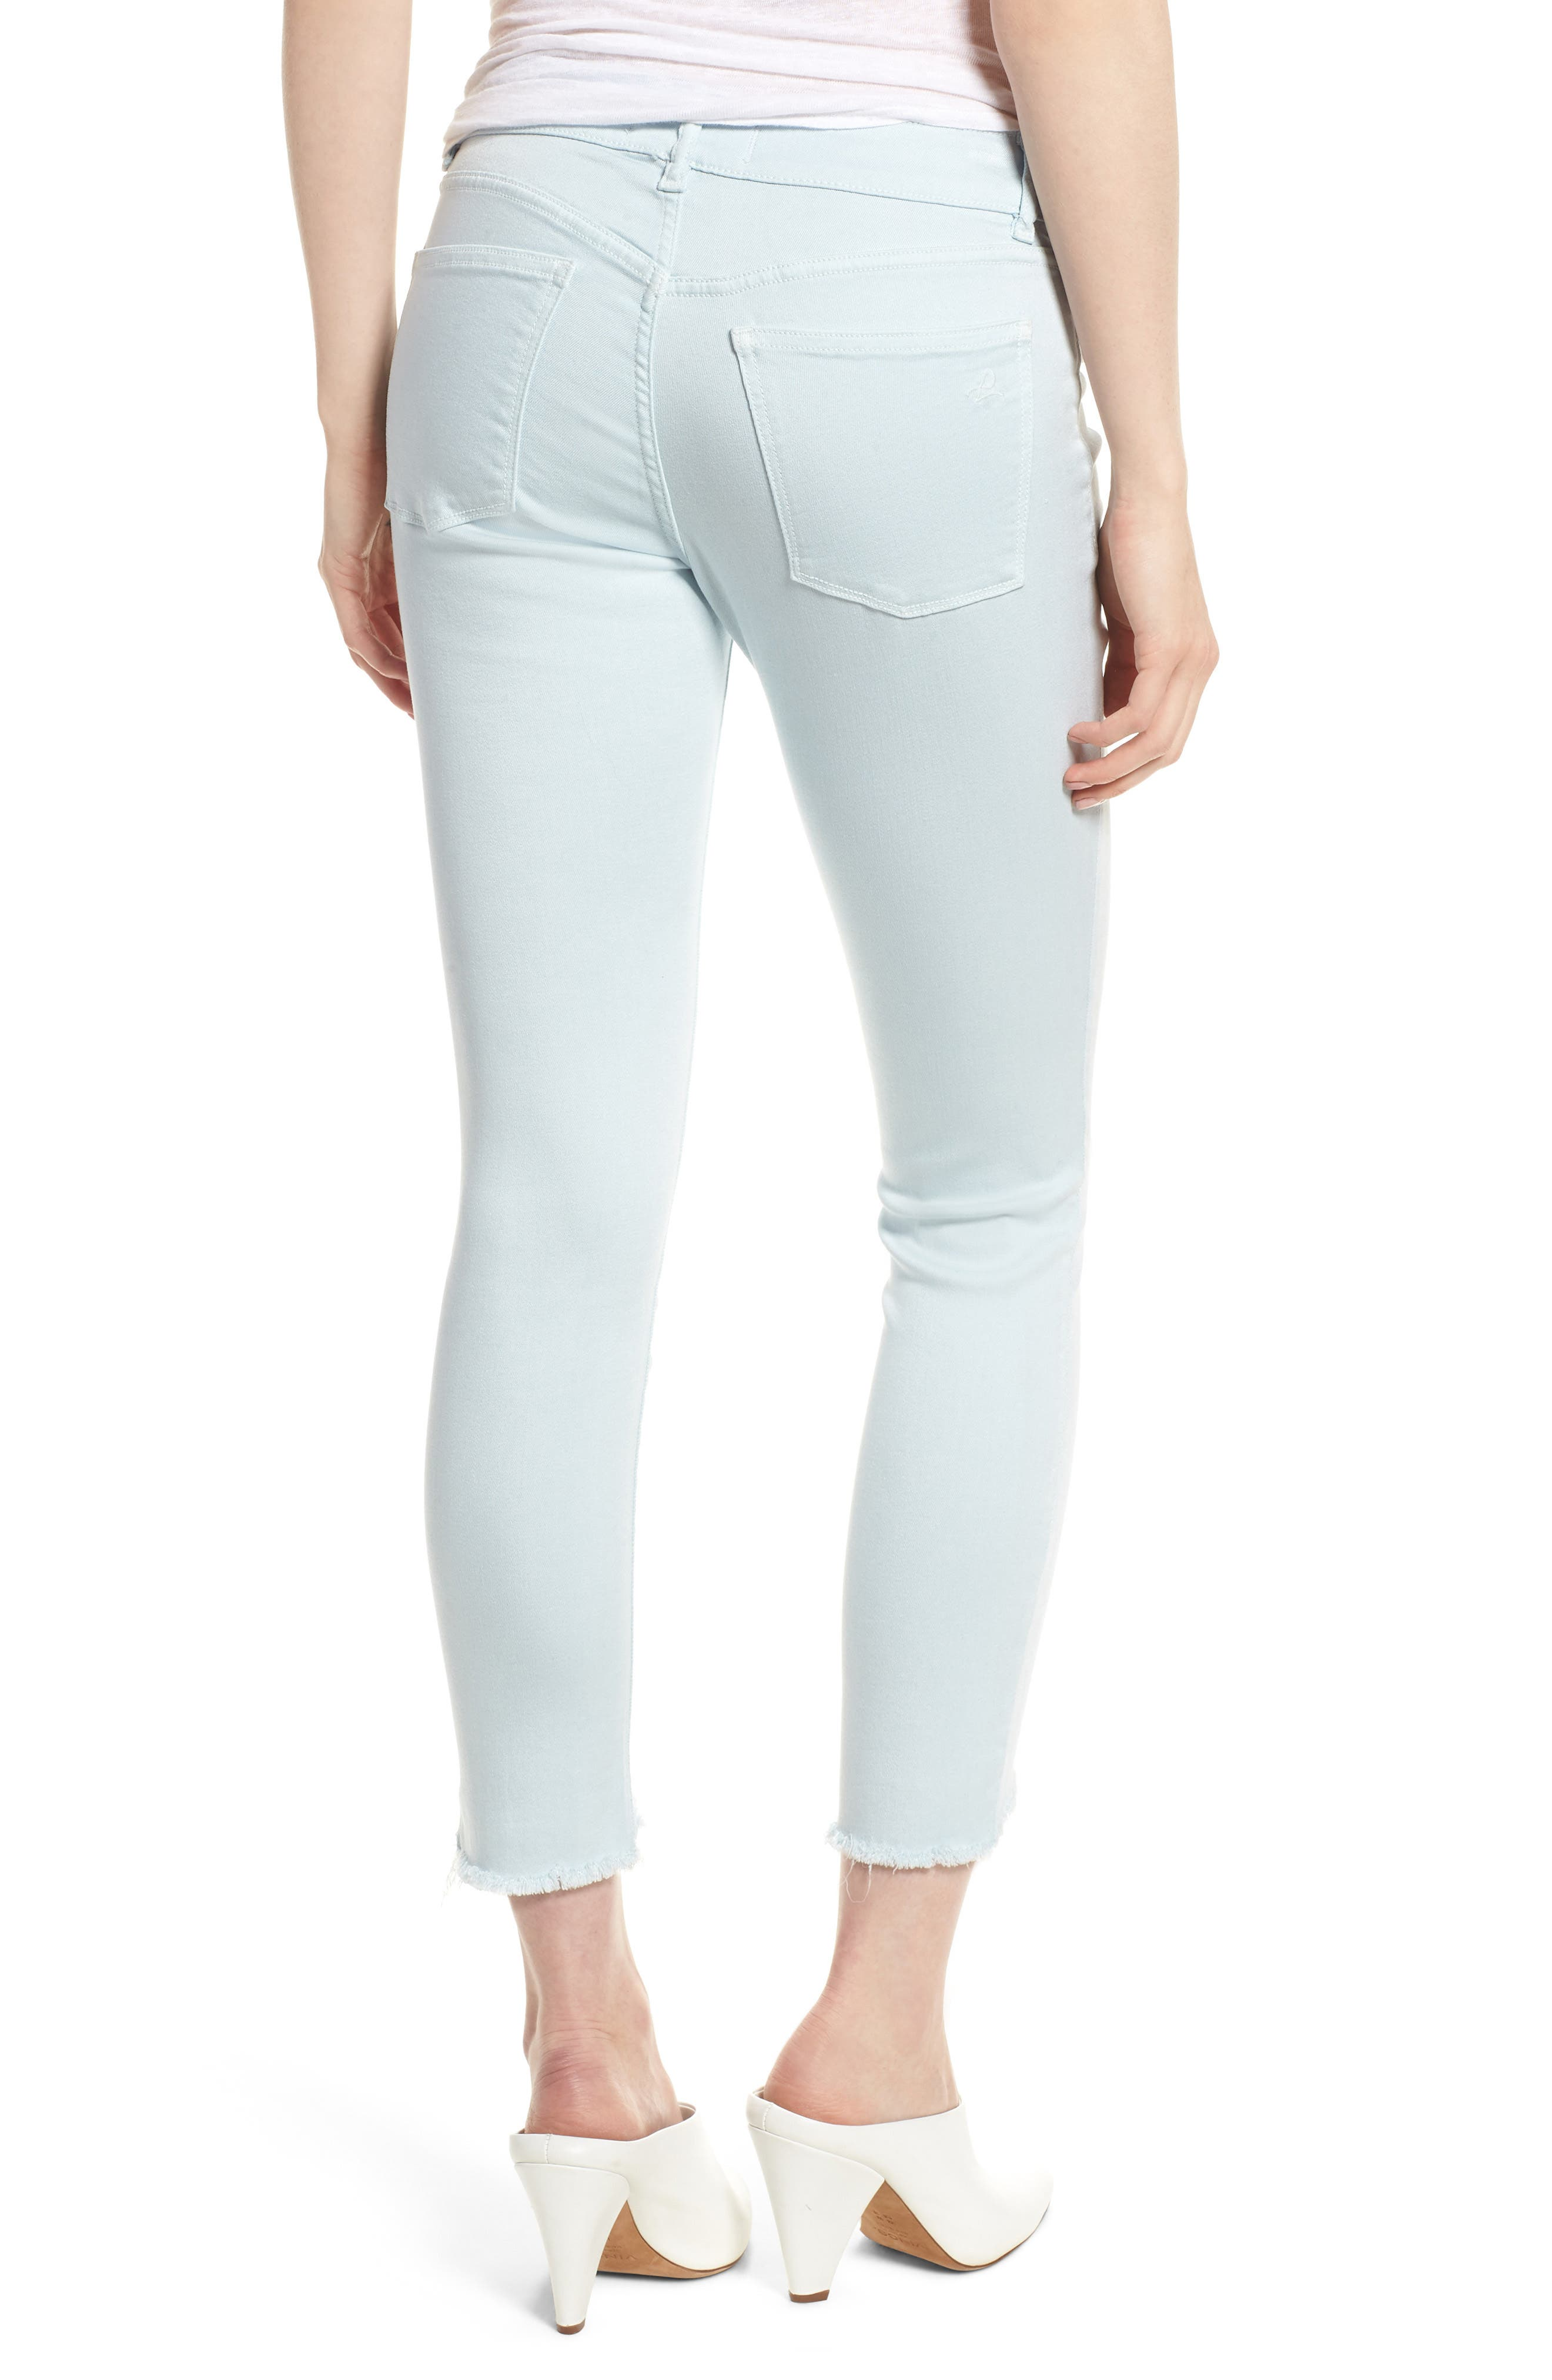 Florence Instasculpt Crop Skinny Jeans,                             Alternate thumbnail 2, color,                             430